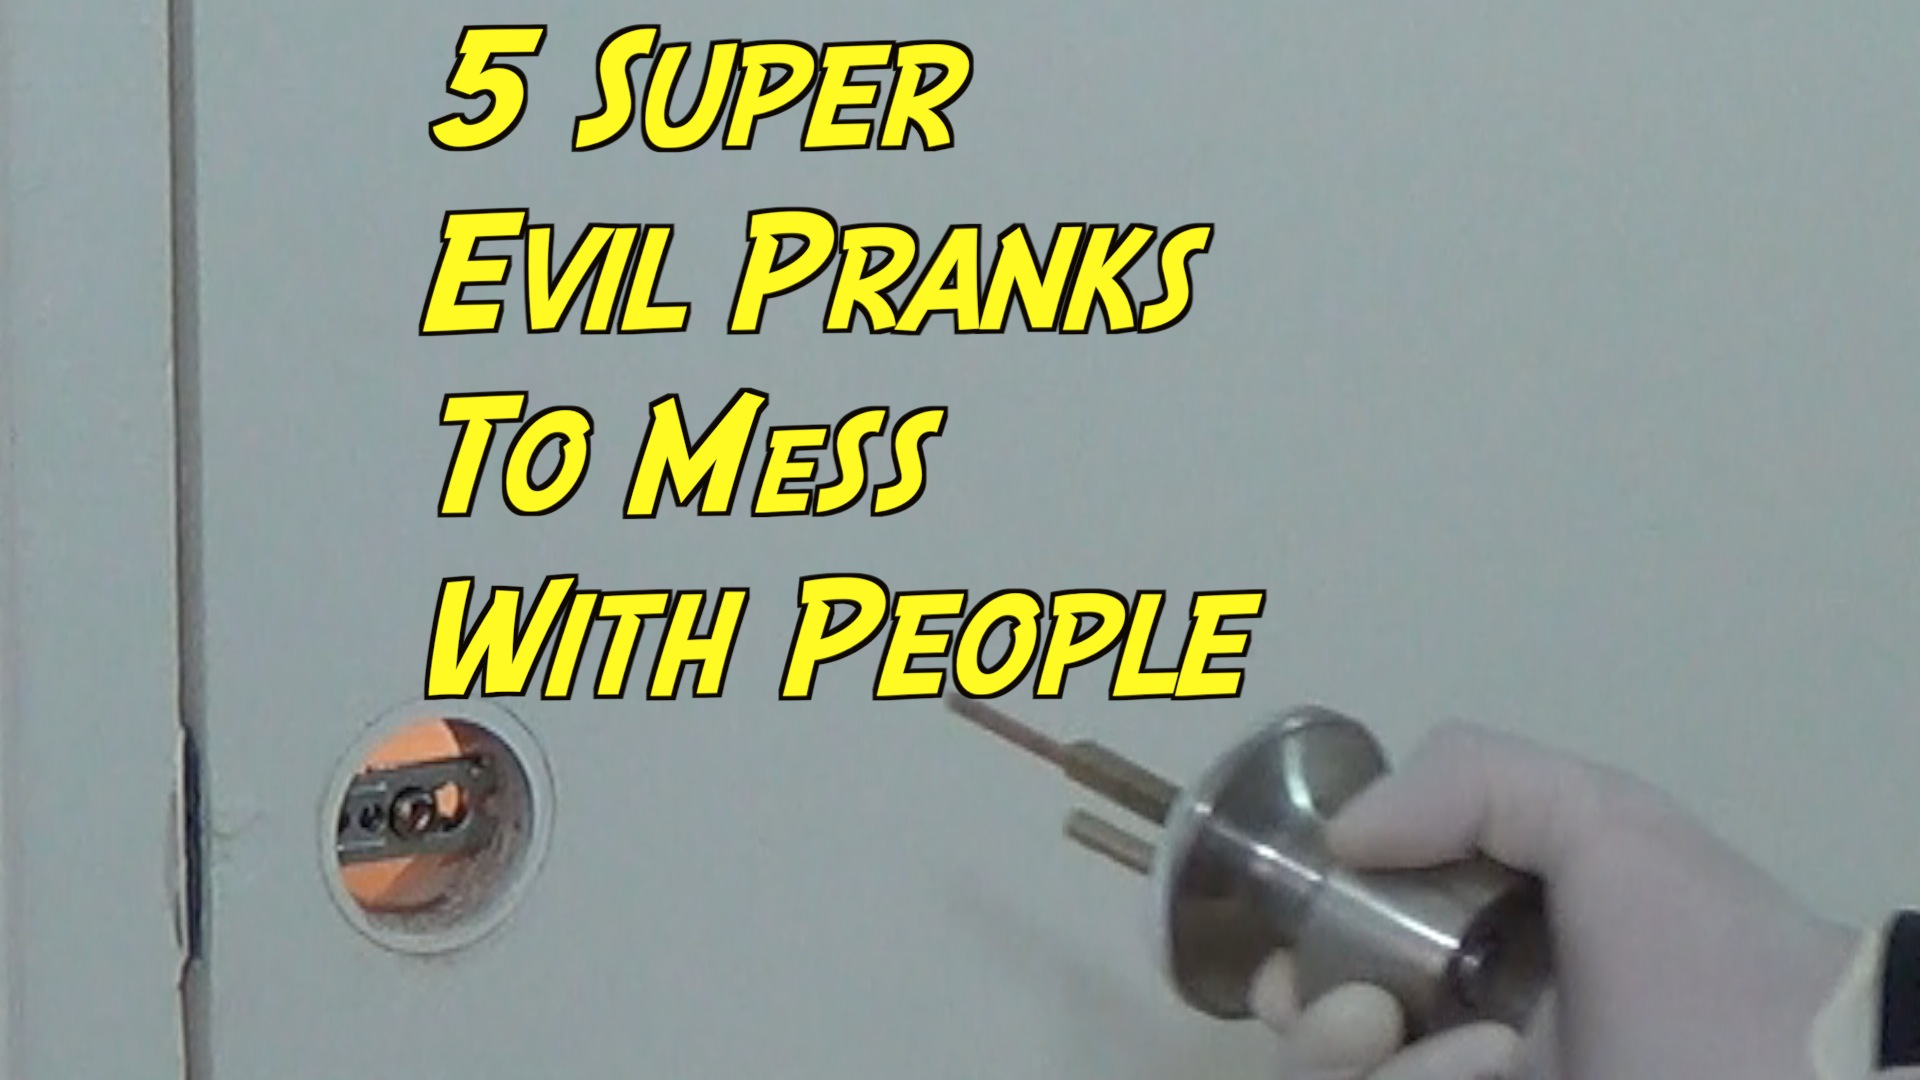 Picture of 5 Super Mean Pranks to Mess With People!